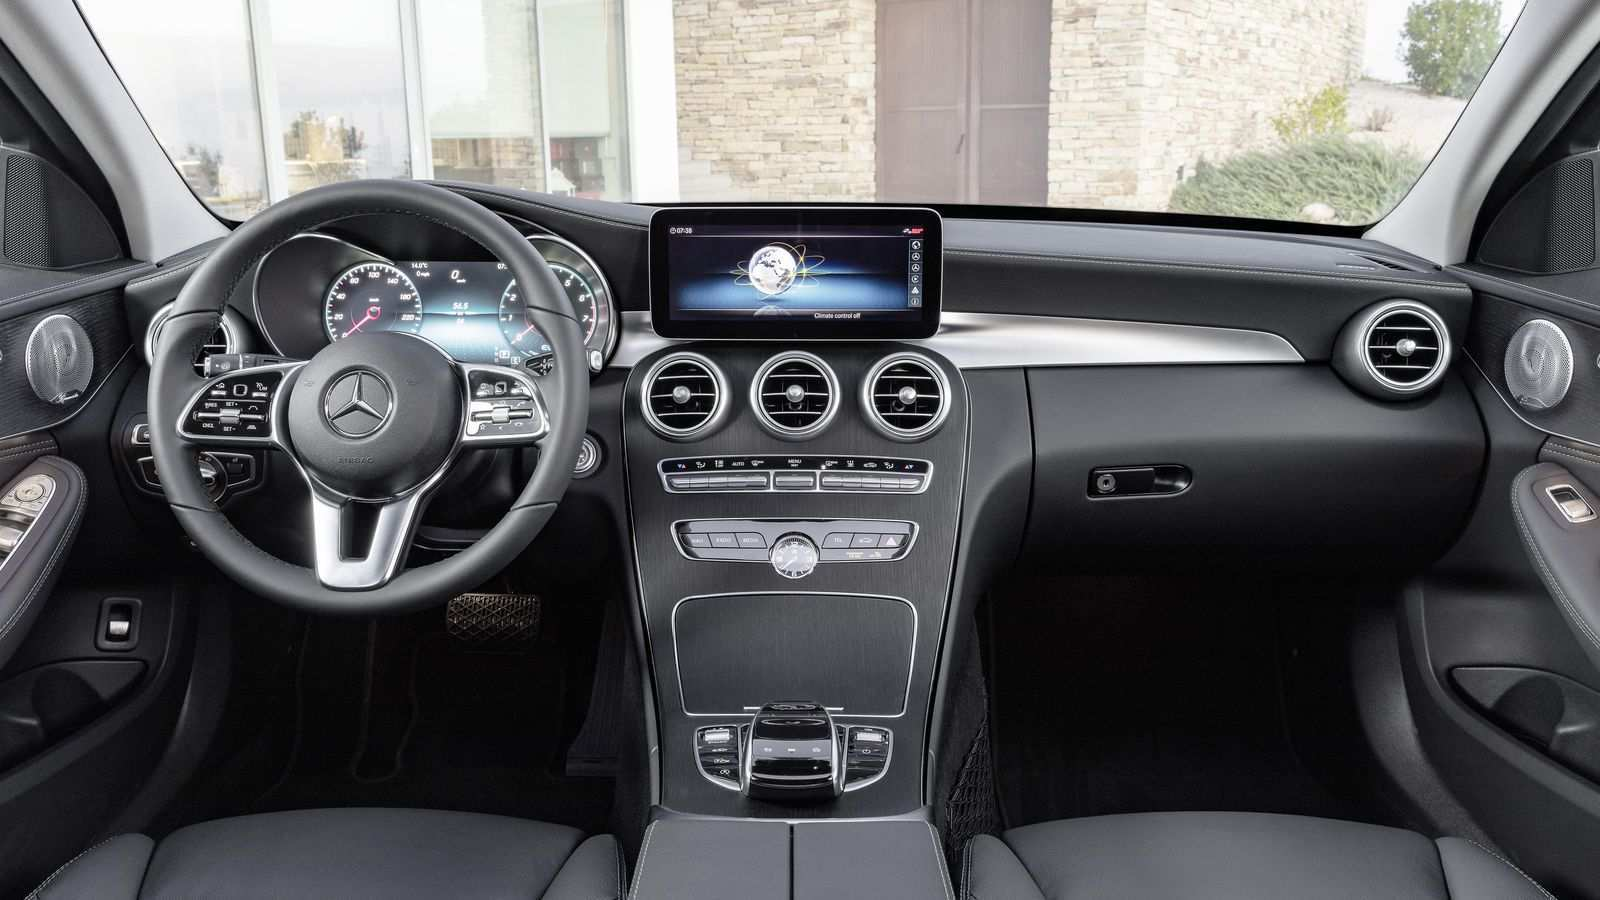 33 All New Mercedes C 2019 Interior Style